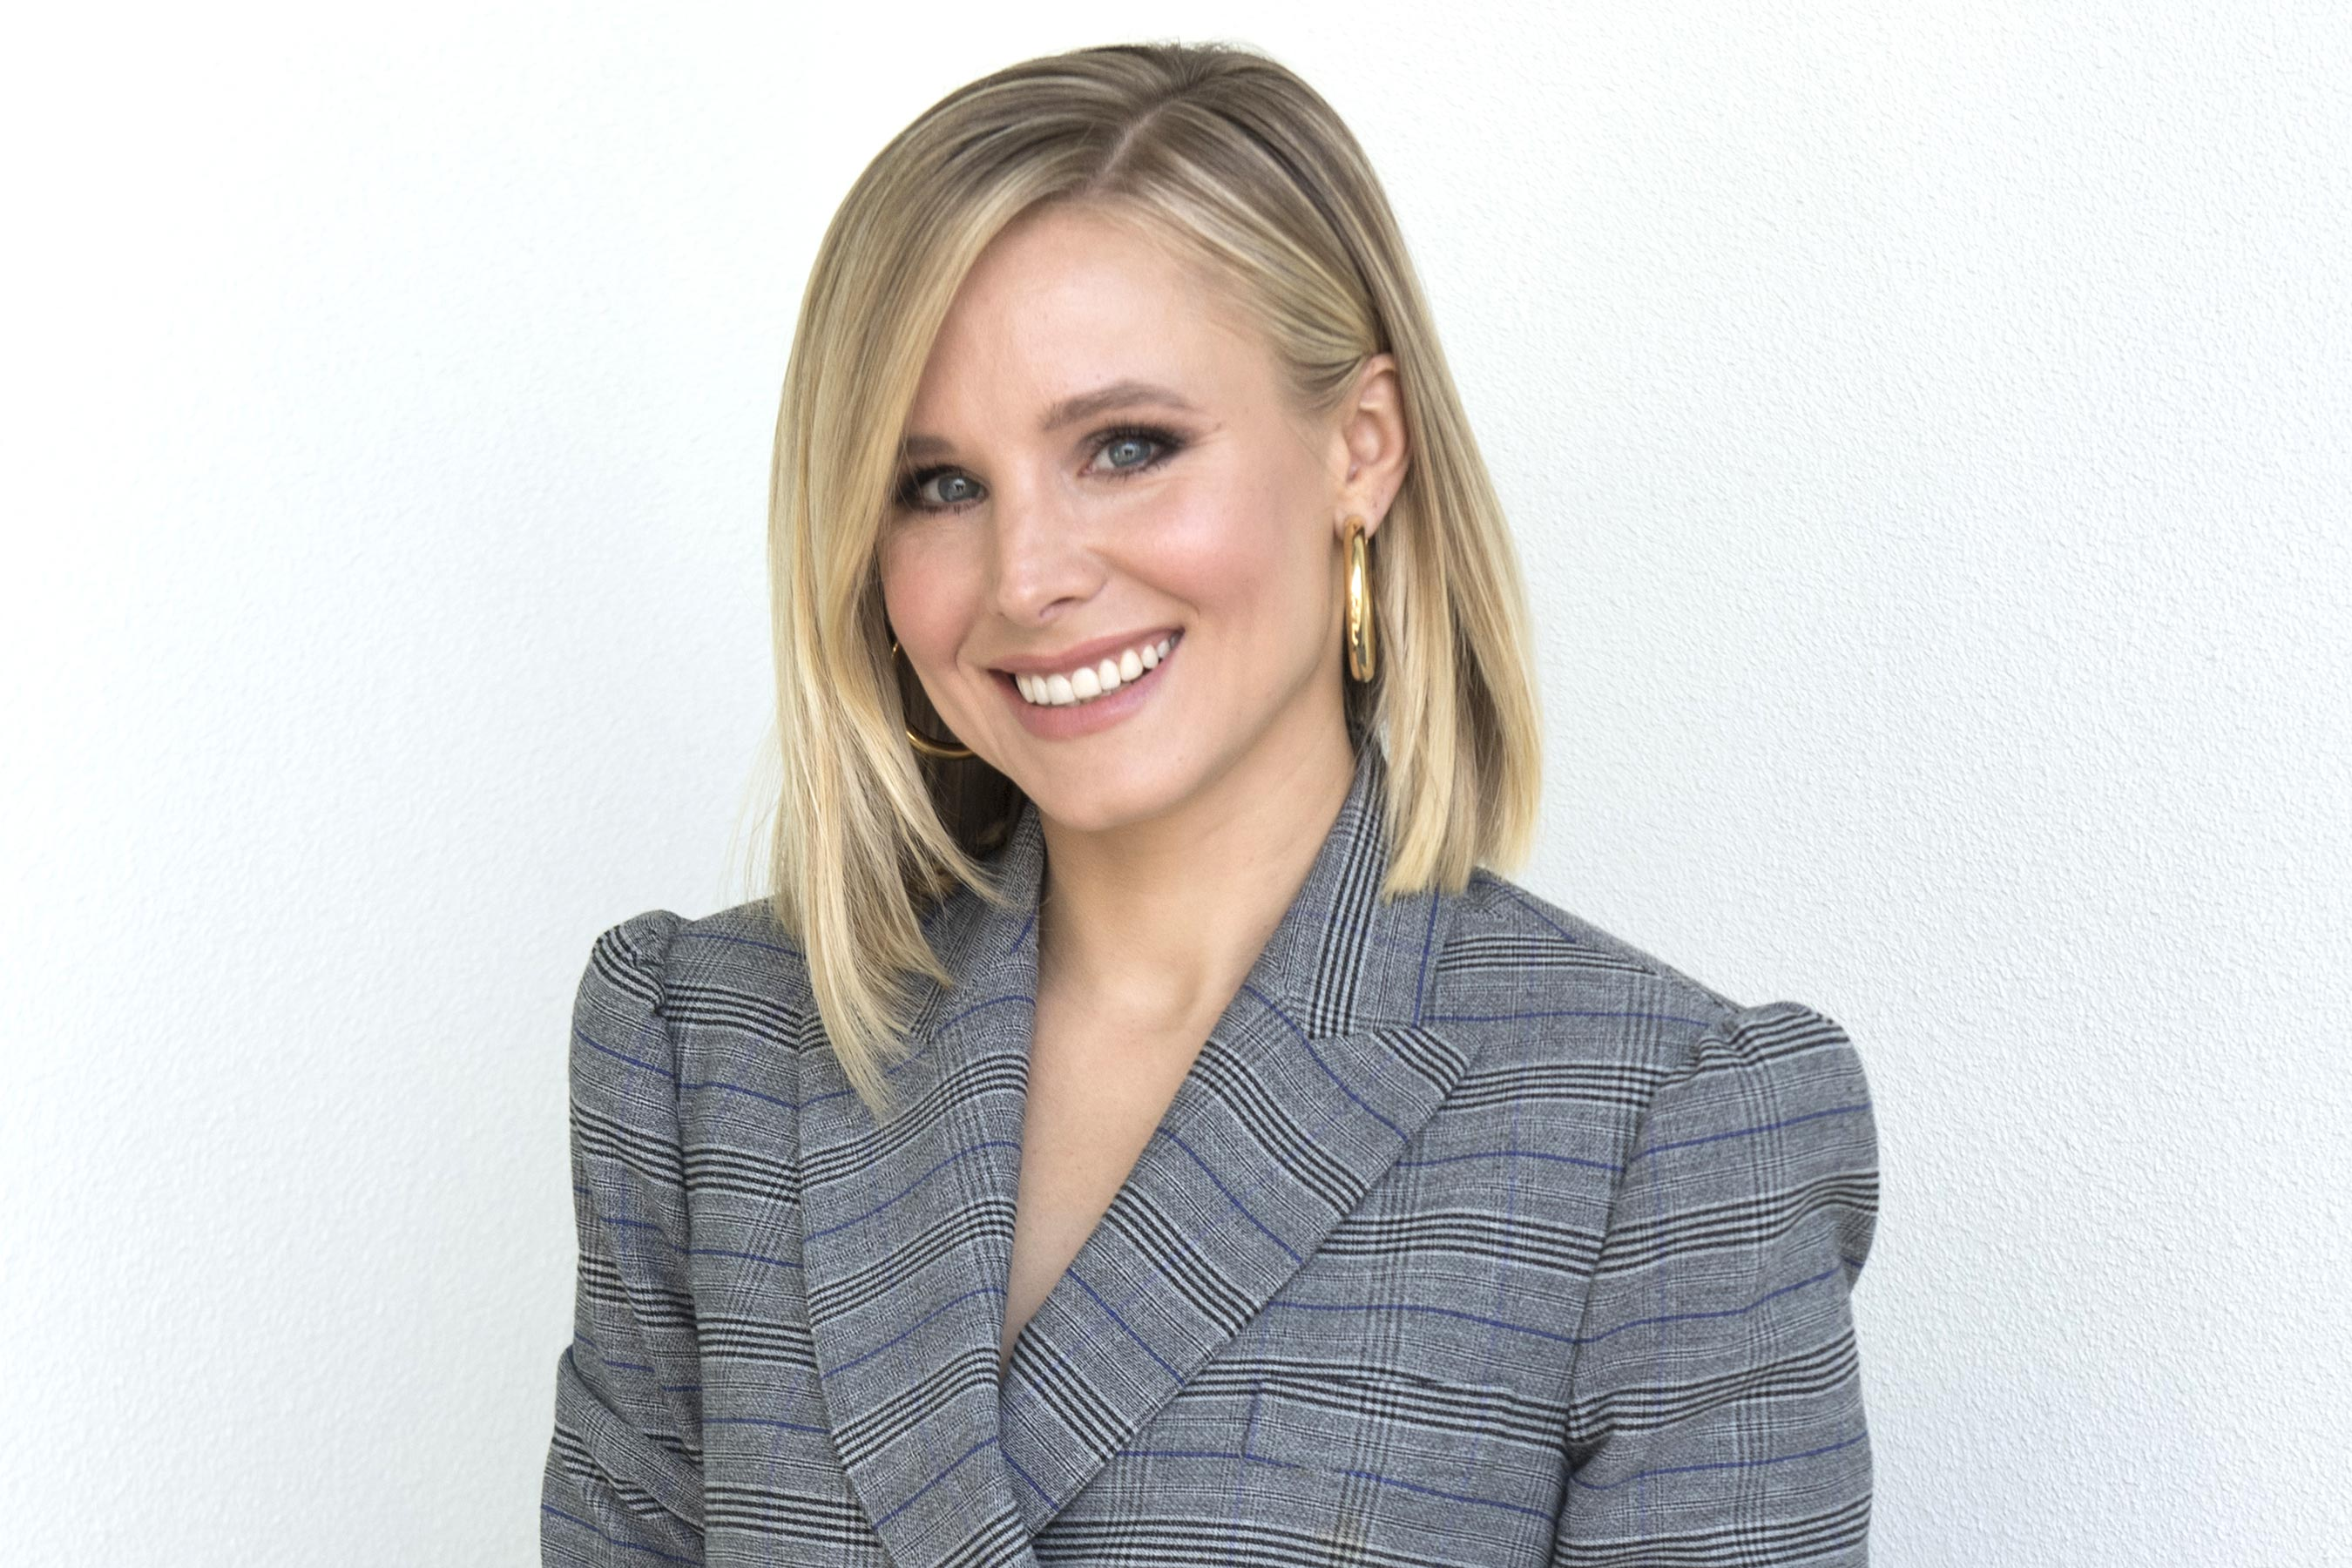 SAG Awards: Kristen Bell on being the first host